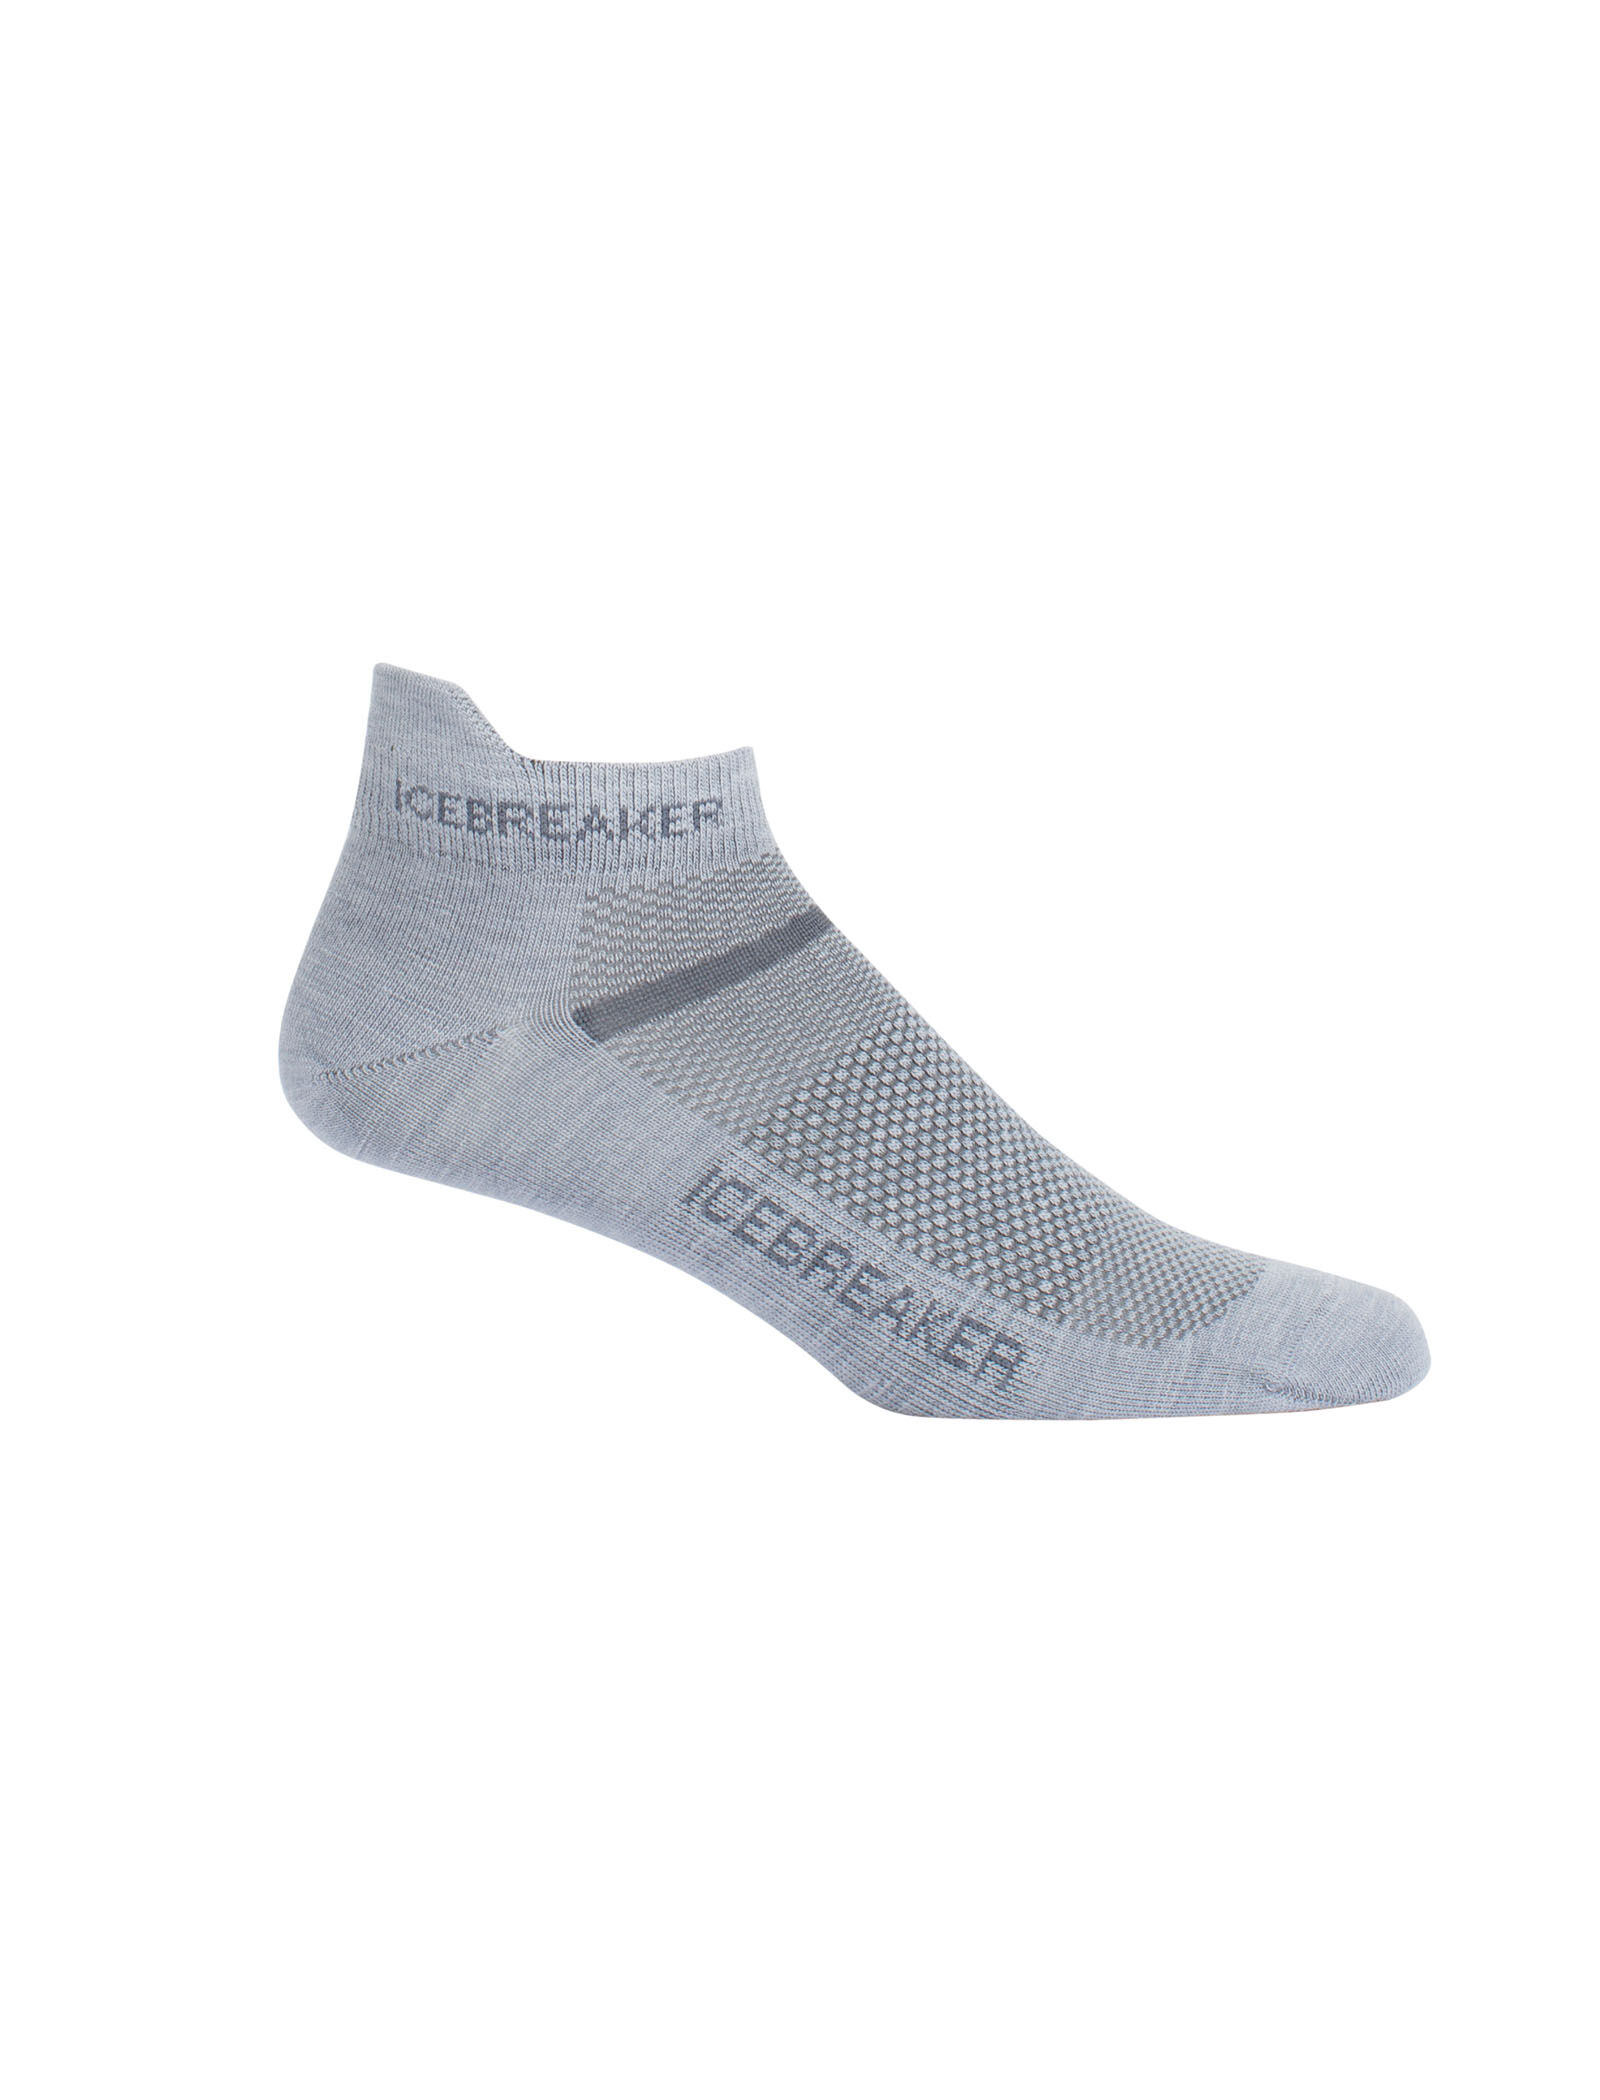 Icebreaker Merino Mens Running /& Multisport Low Crew Socks Merino Wool